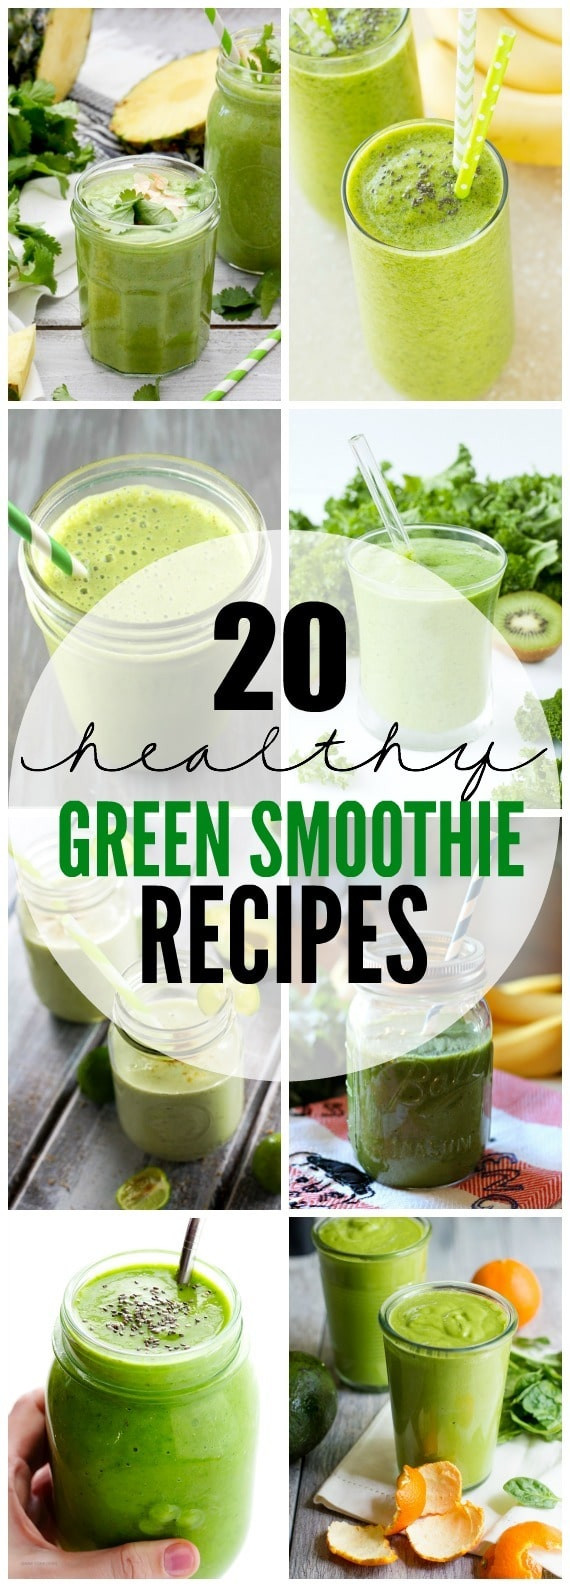 Healthy Energy Smoothies  20 Healthy Green Smoothie Recipes Yummy Healthy Easy